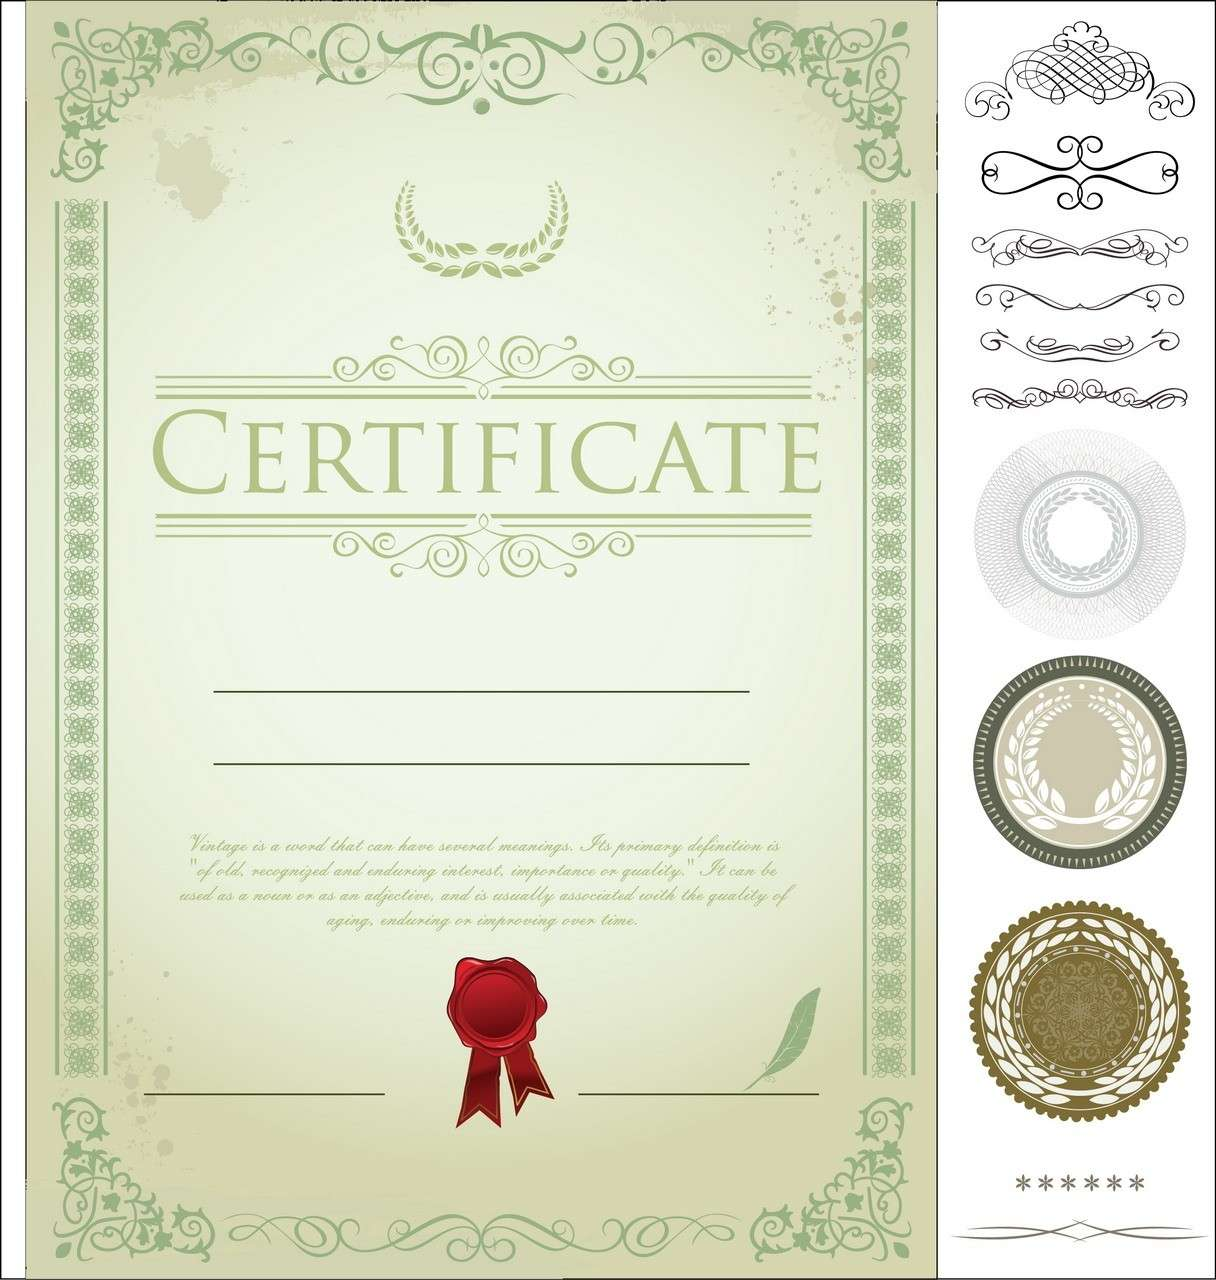 Certificate Template 04 png